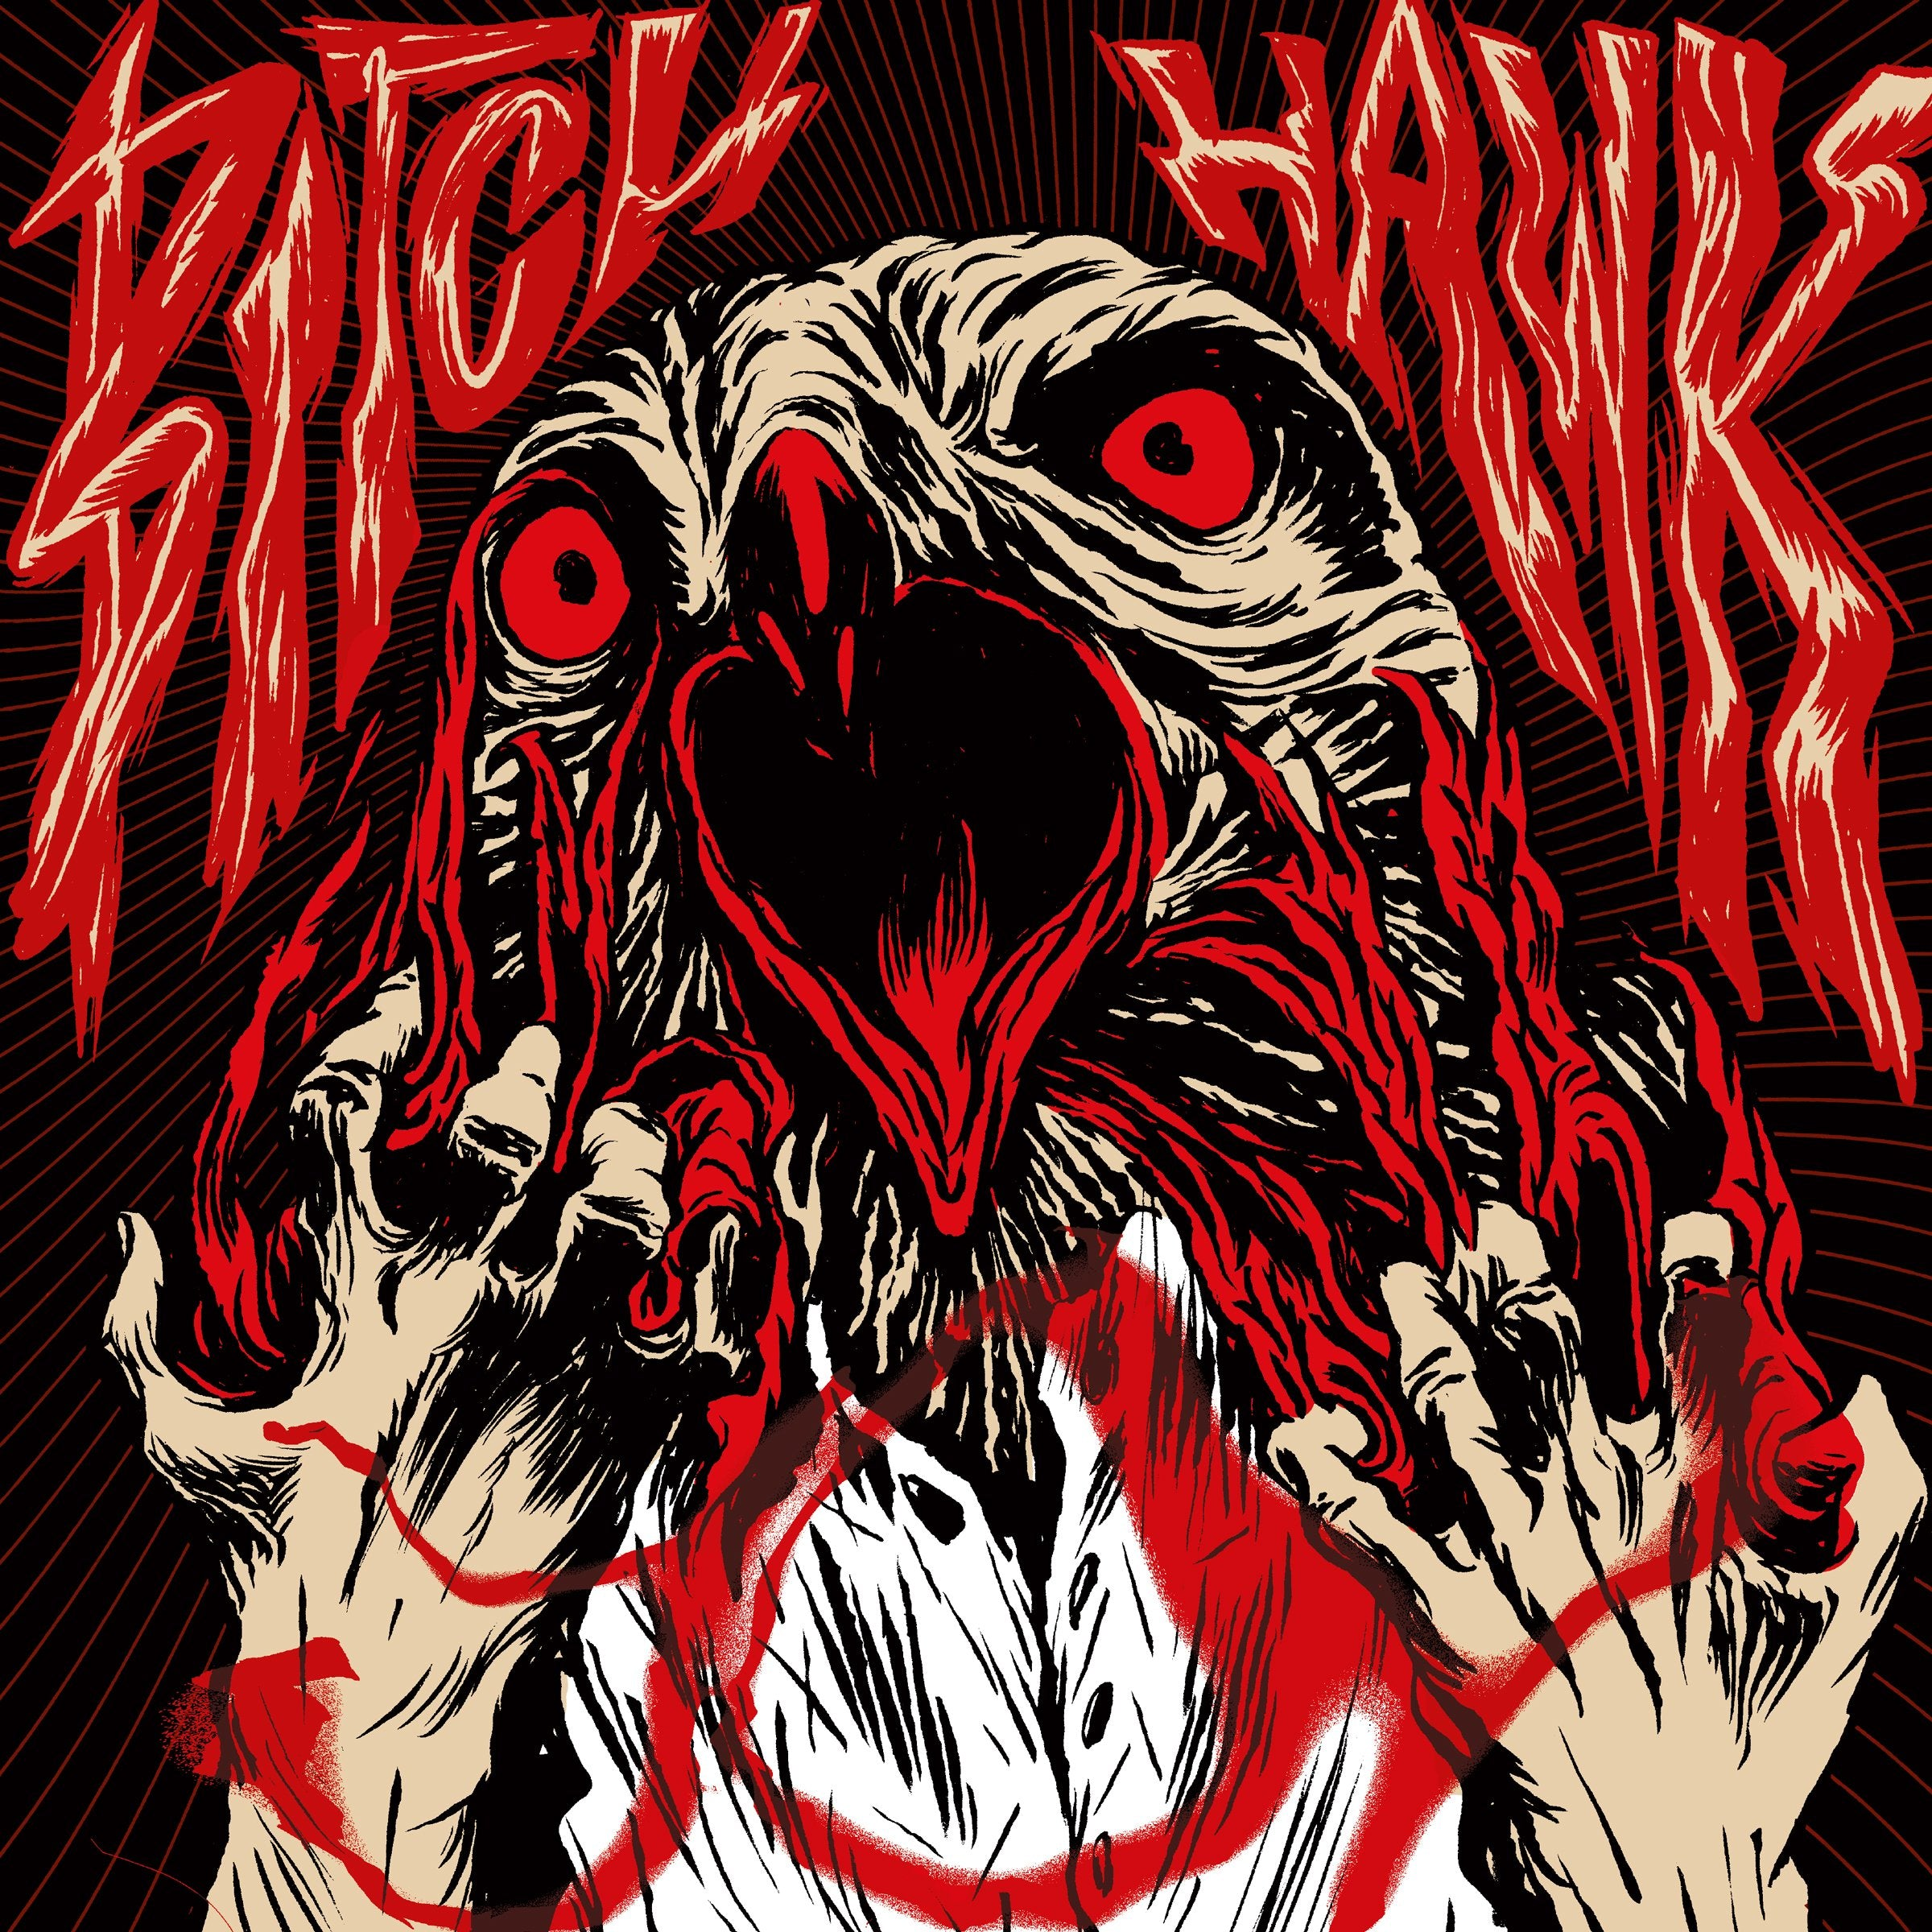 Bitch Hawk - 2 vinyl albums bundle